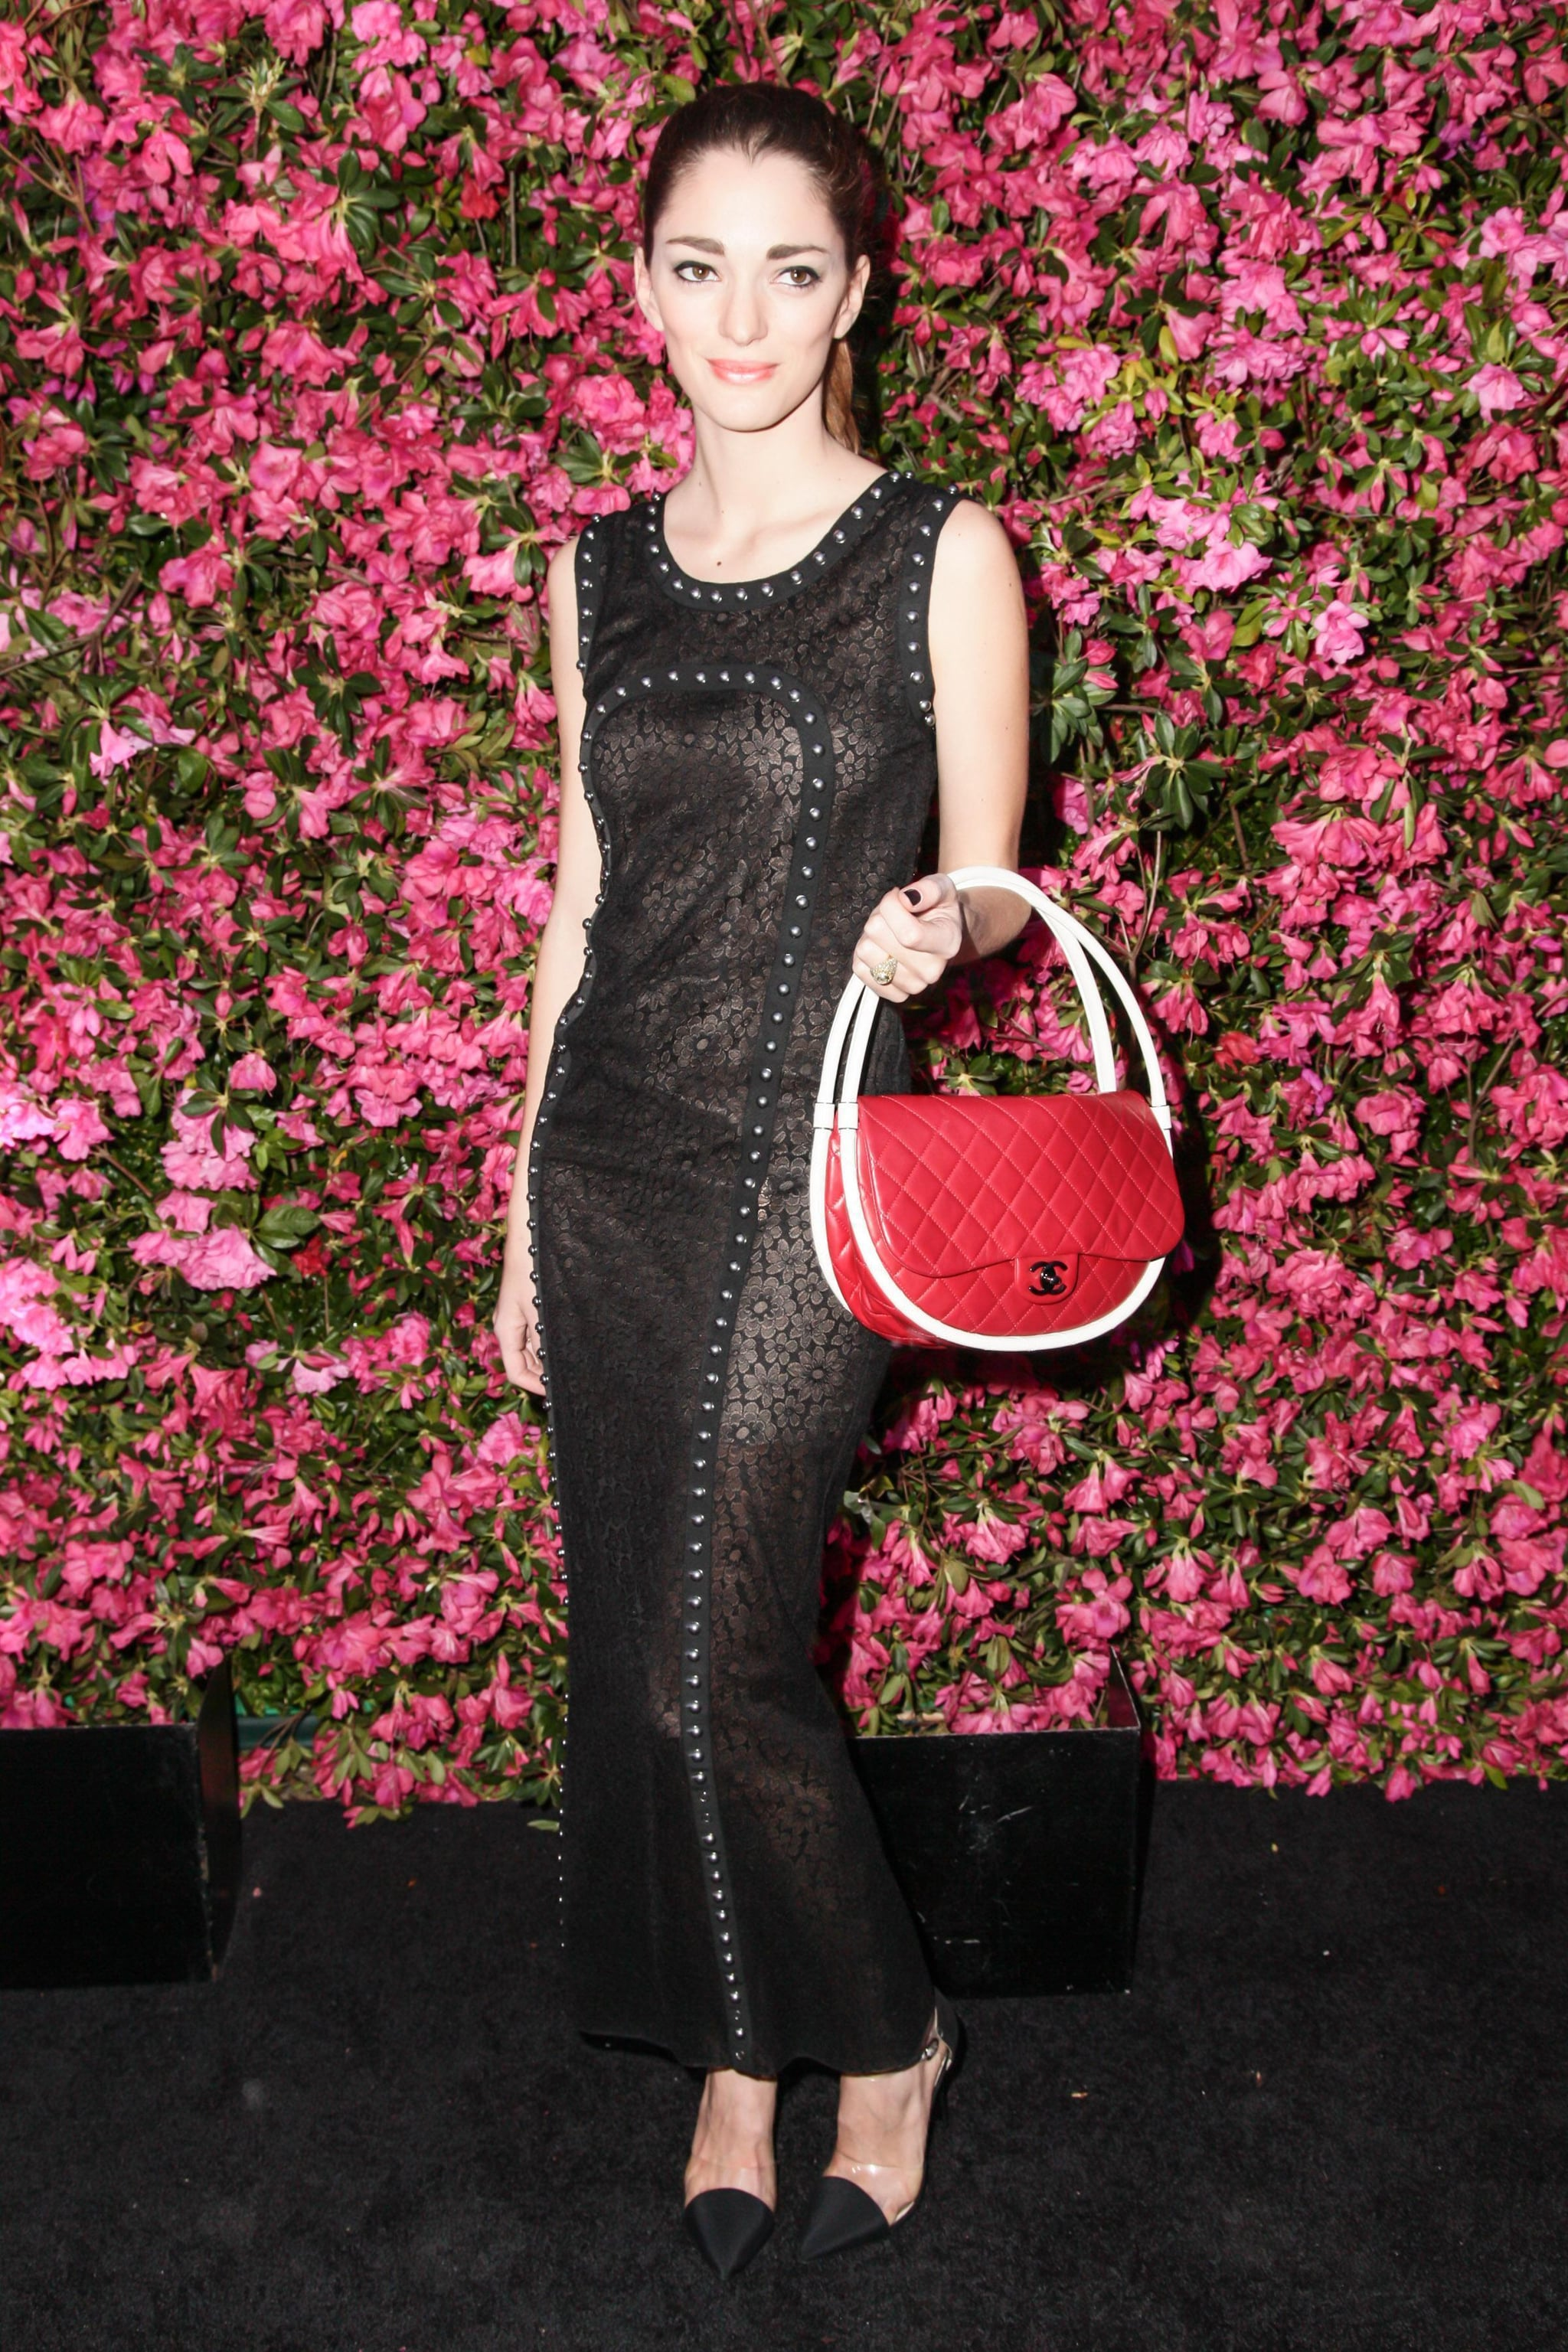 Sofia Sanchez Barrenechea wore Pre-Spring 2013 Chanel and carried a Spring 2013 Chanel hula-hoop bag at Chanel's Tribeca Film Festival Artists Dinner in New York. Source: Matteo Prandoni/BFAnyc.com